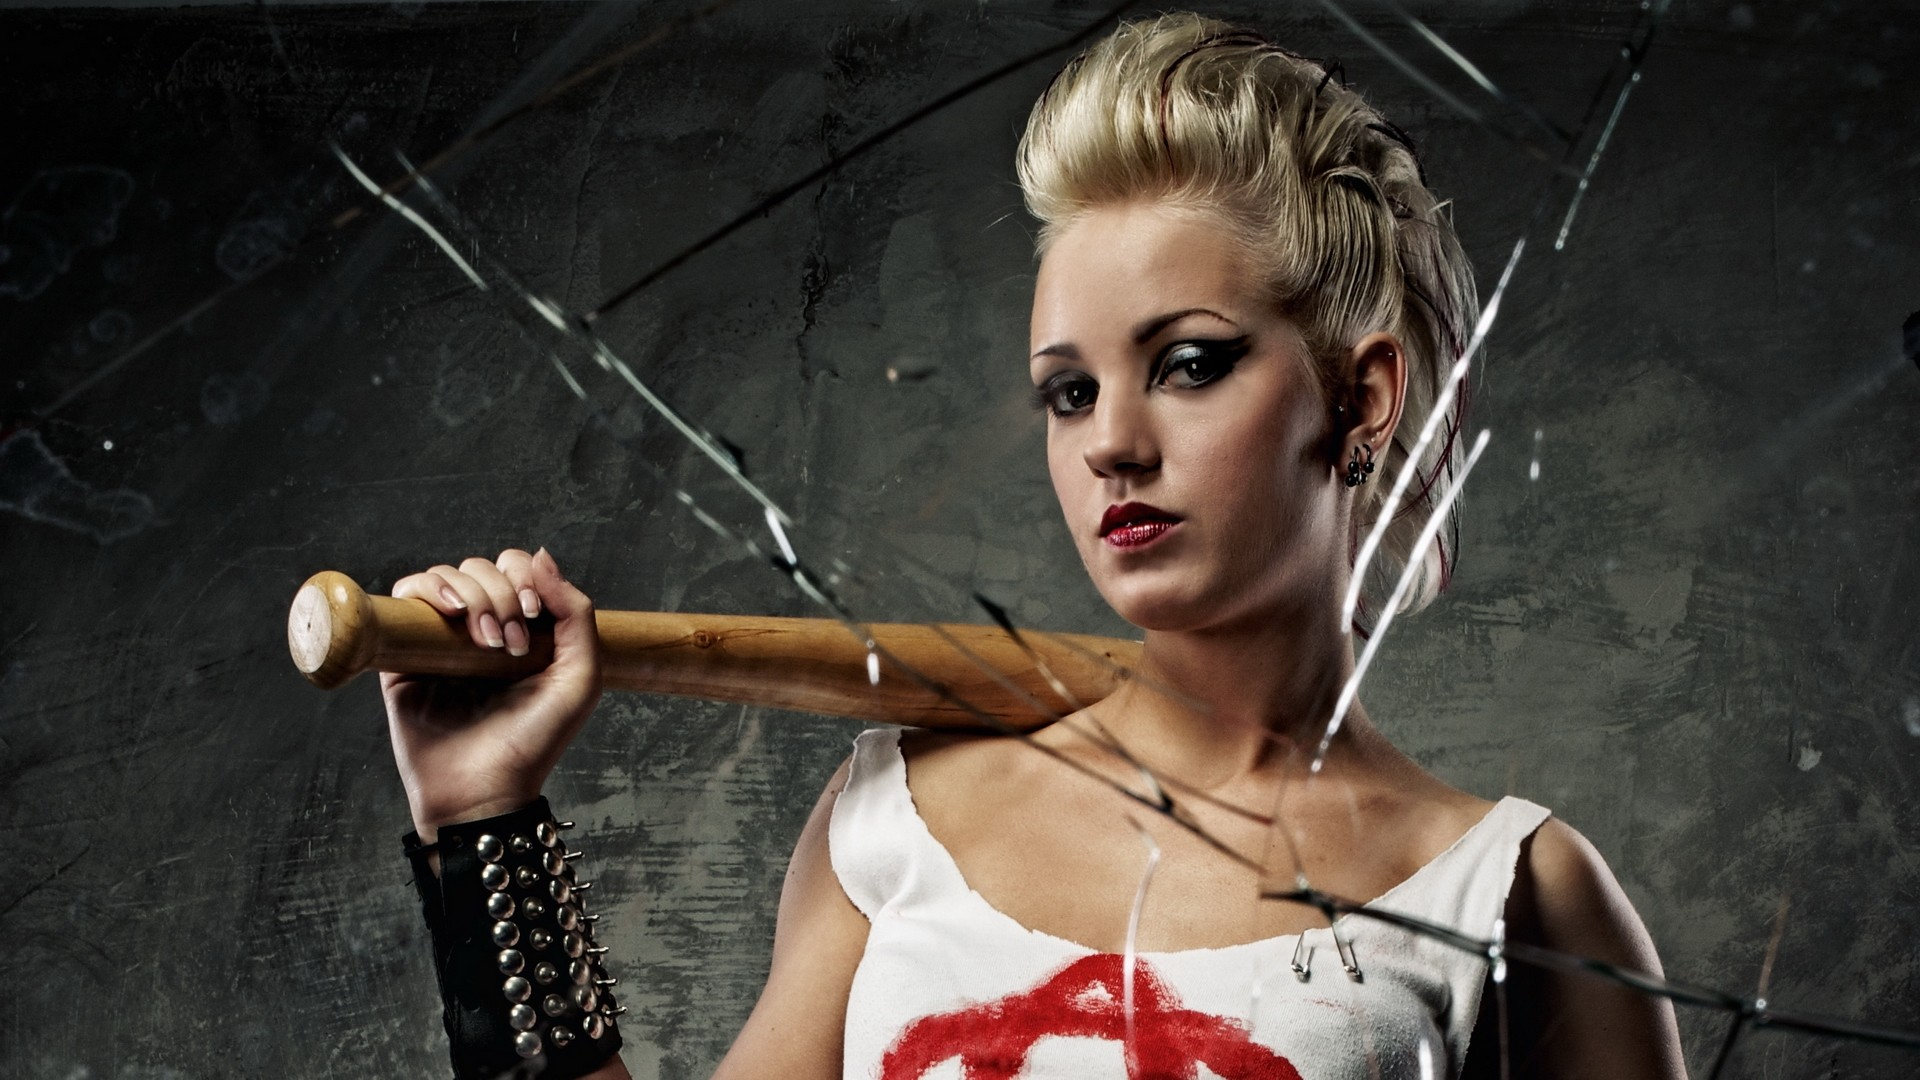 Anarchy Full HD Wallpaper and Background Image | 1920x1080 ...